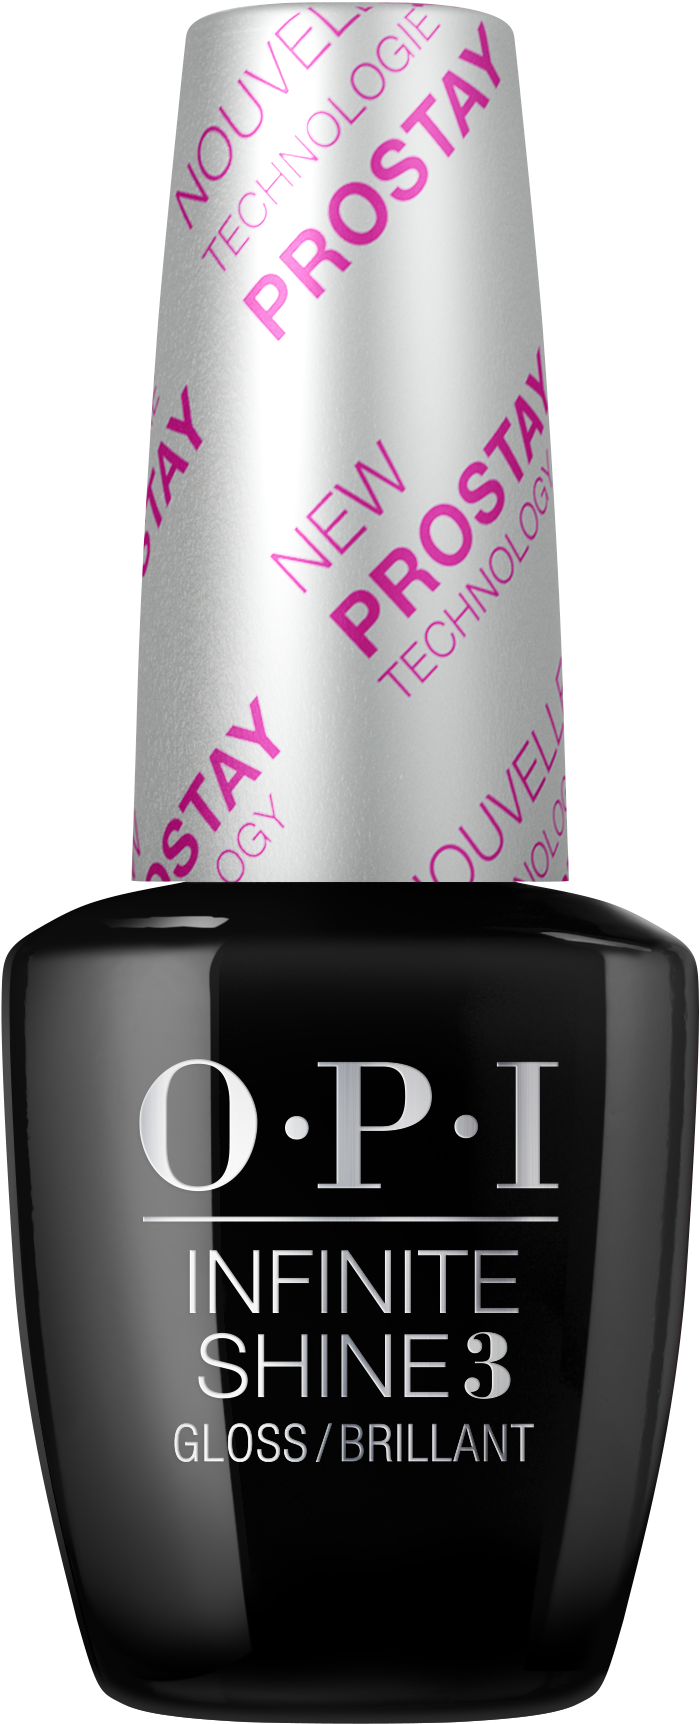 OPI Launches Newly Formulated ProStay Primer Base Coat and Gloss Top Coat